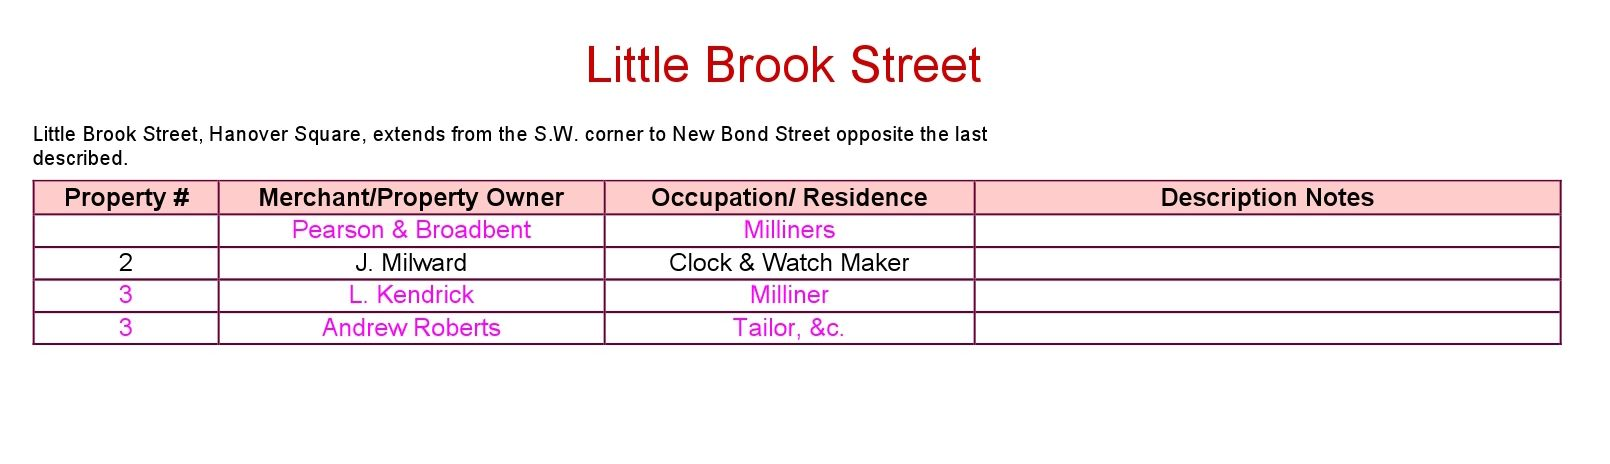 Little Brook Street, Hanover Square, extends from the S.W